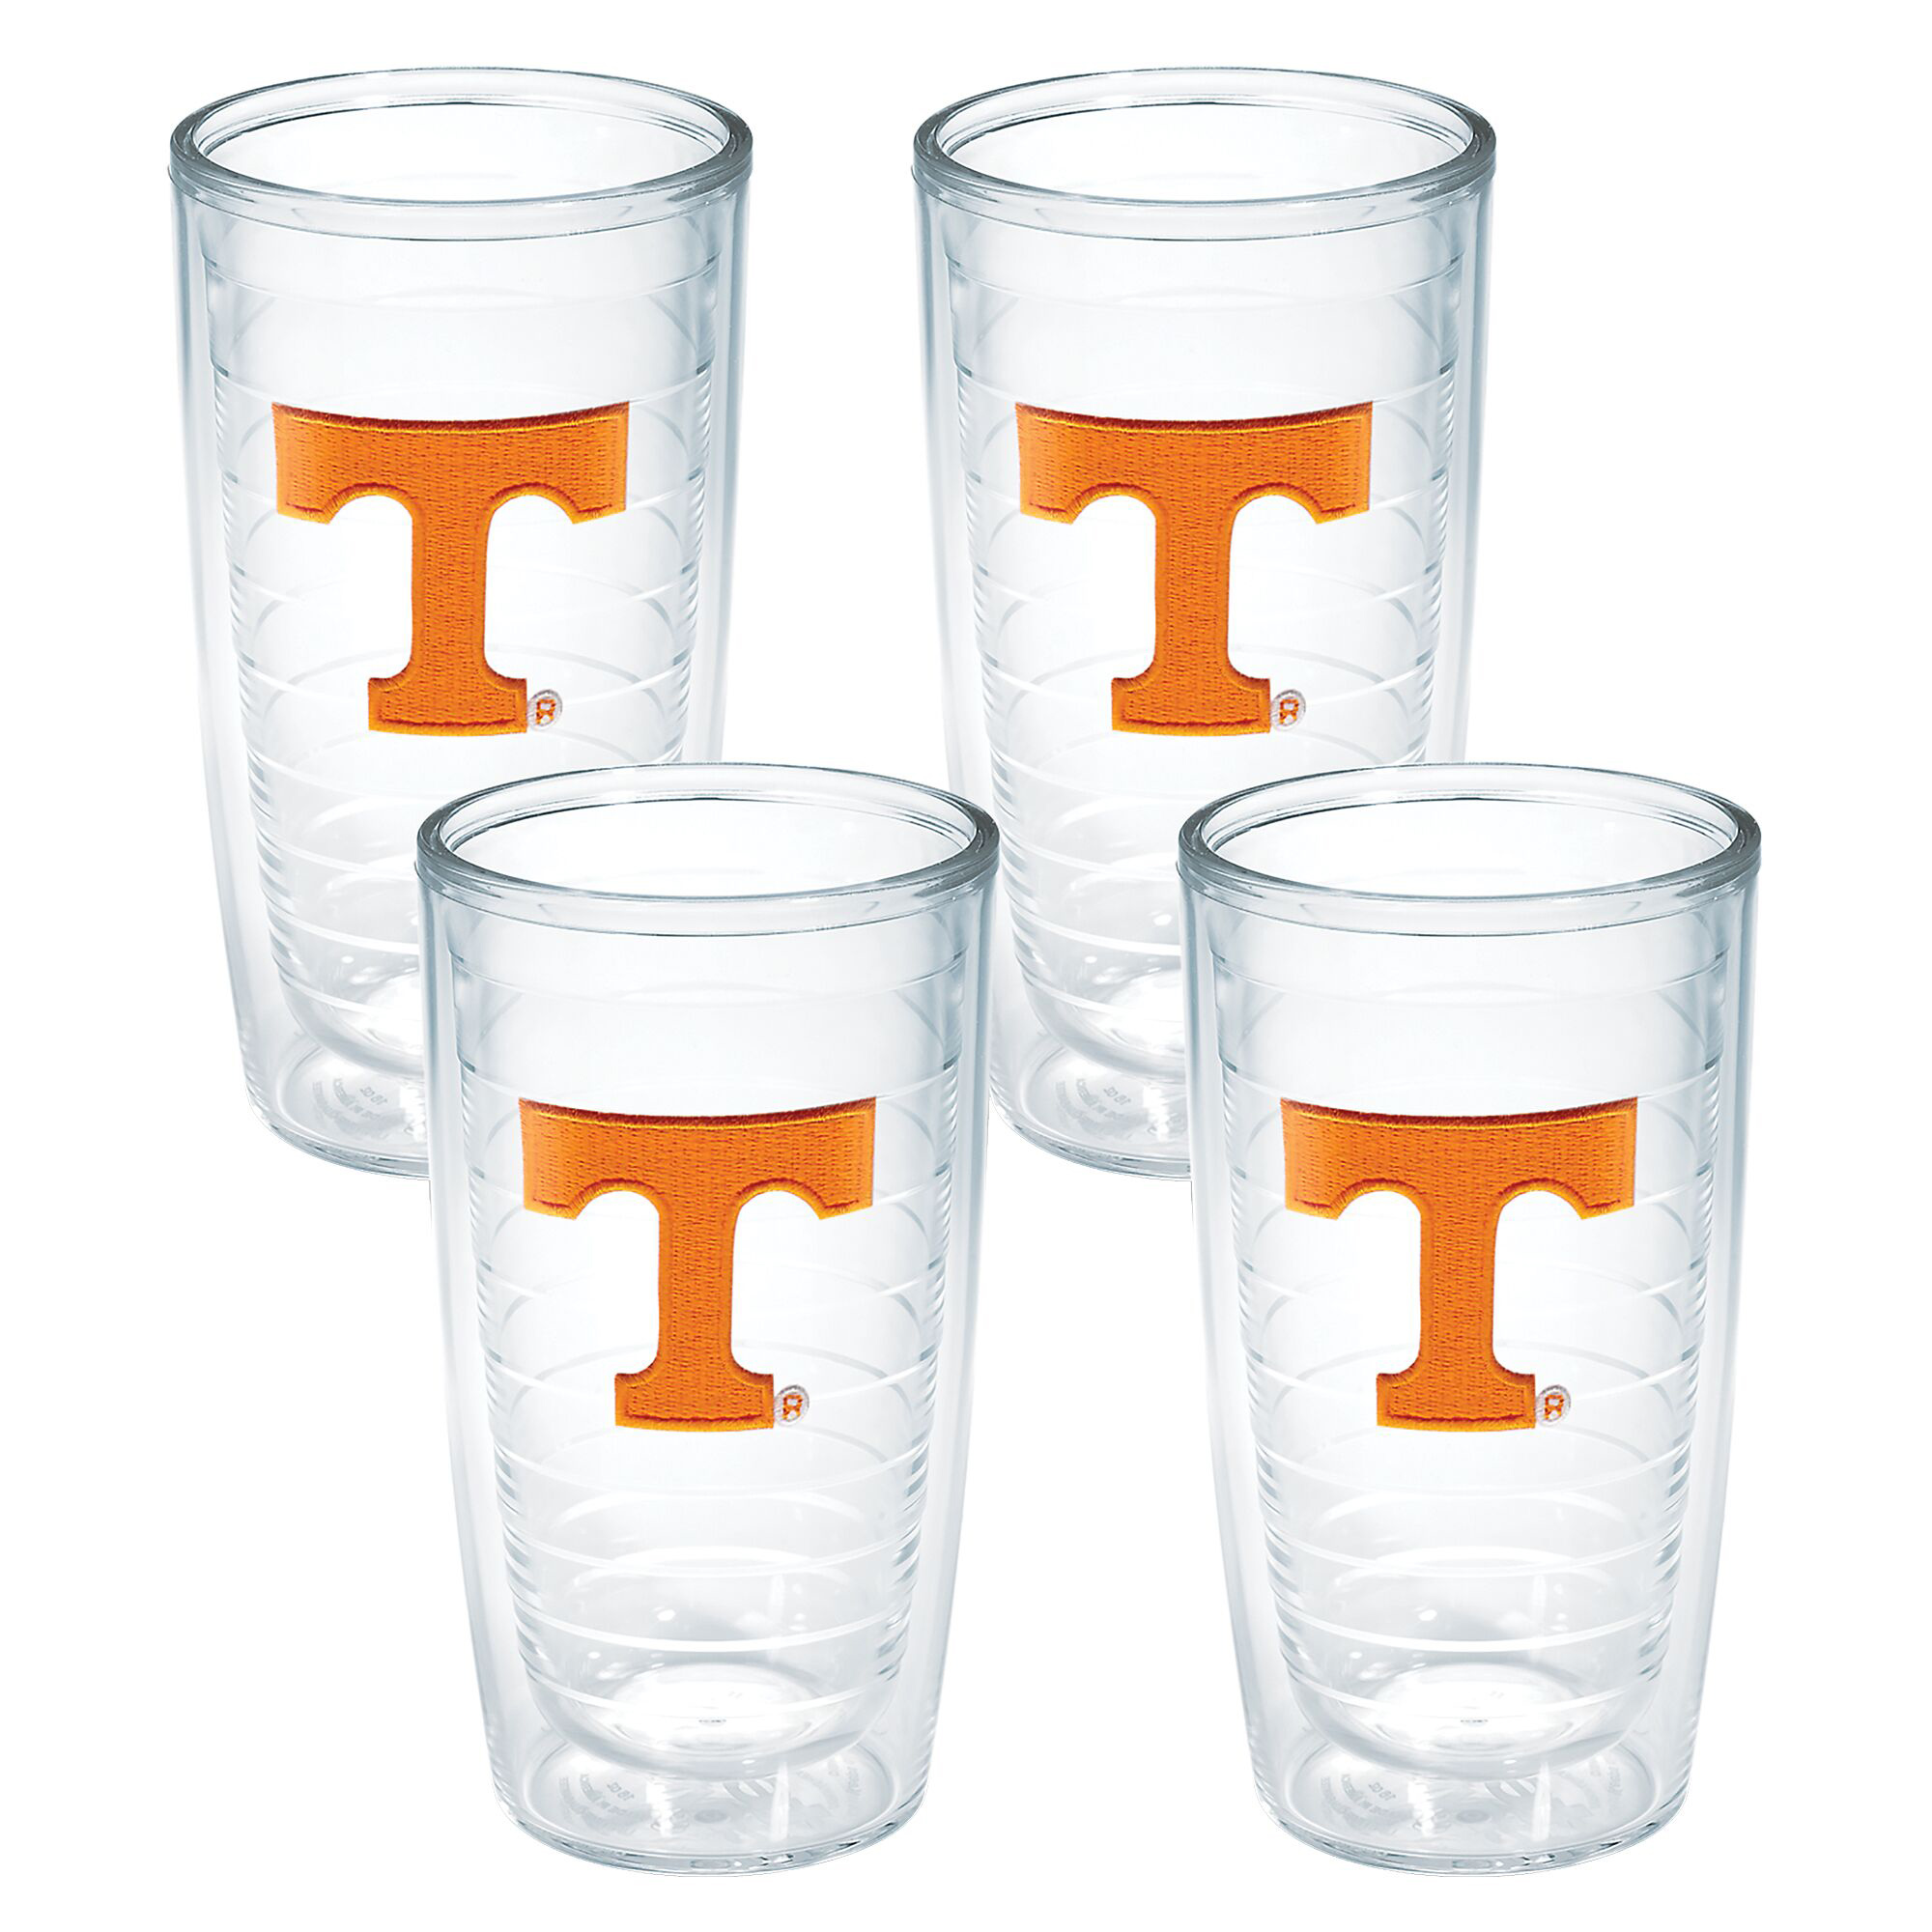 Tennessee 16 oz Tervis Tumblers - Set of 4